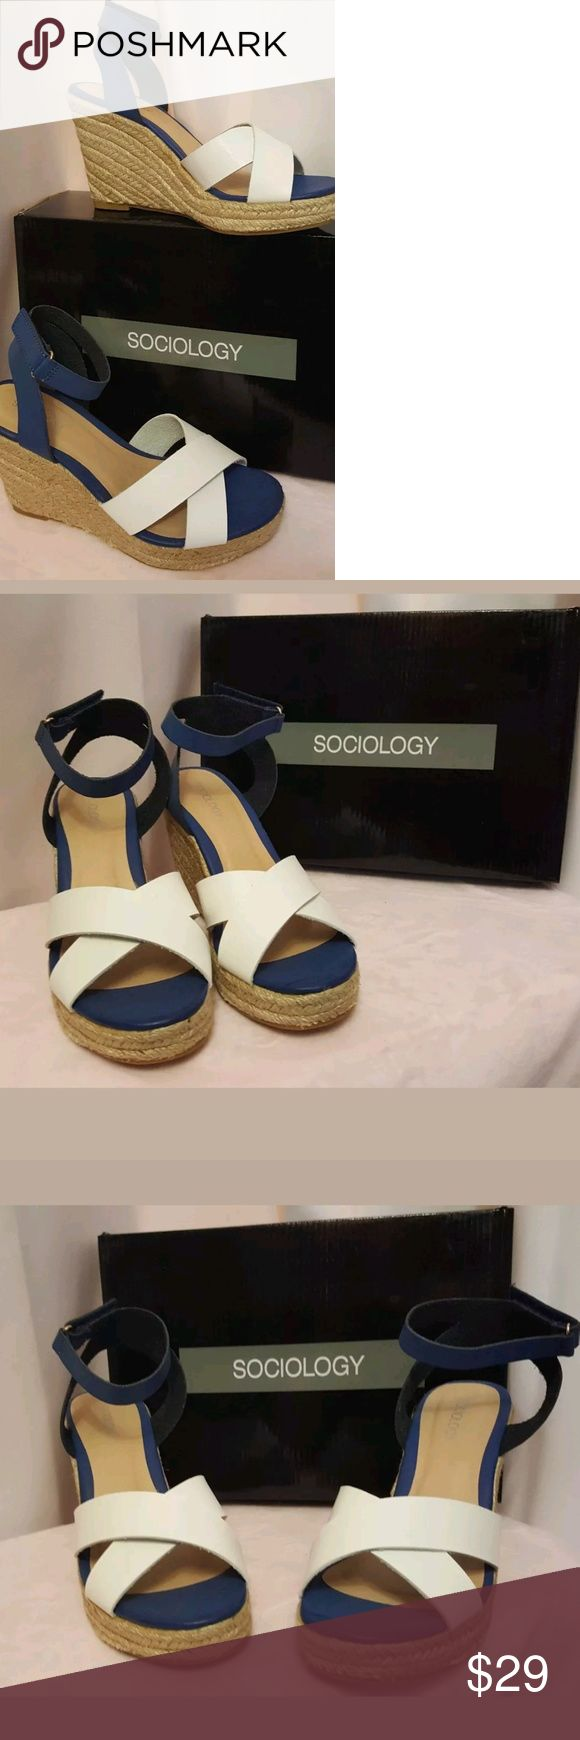 Sociology Criss Cross Espadrille Wedge Sandals 7 Brand New in Box Sociology White & Navy Wedge Sandals. Beautiful shoes, great discounted price. Retails $79.      White and Navy goes great with jeans, dresses, and most casual wear. Great for everyday!  Size 7 Sociology Shoes Espadrilles